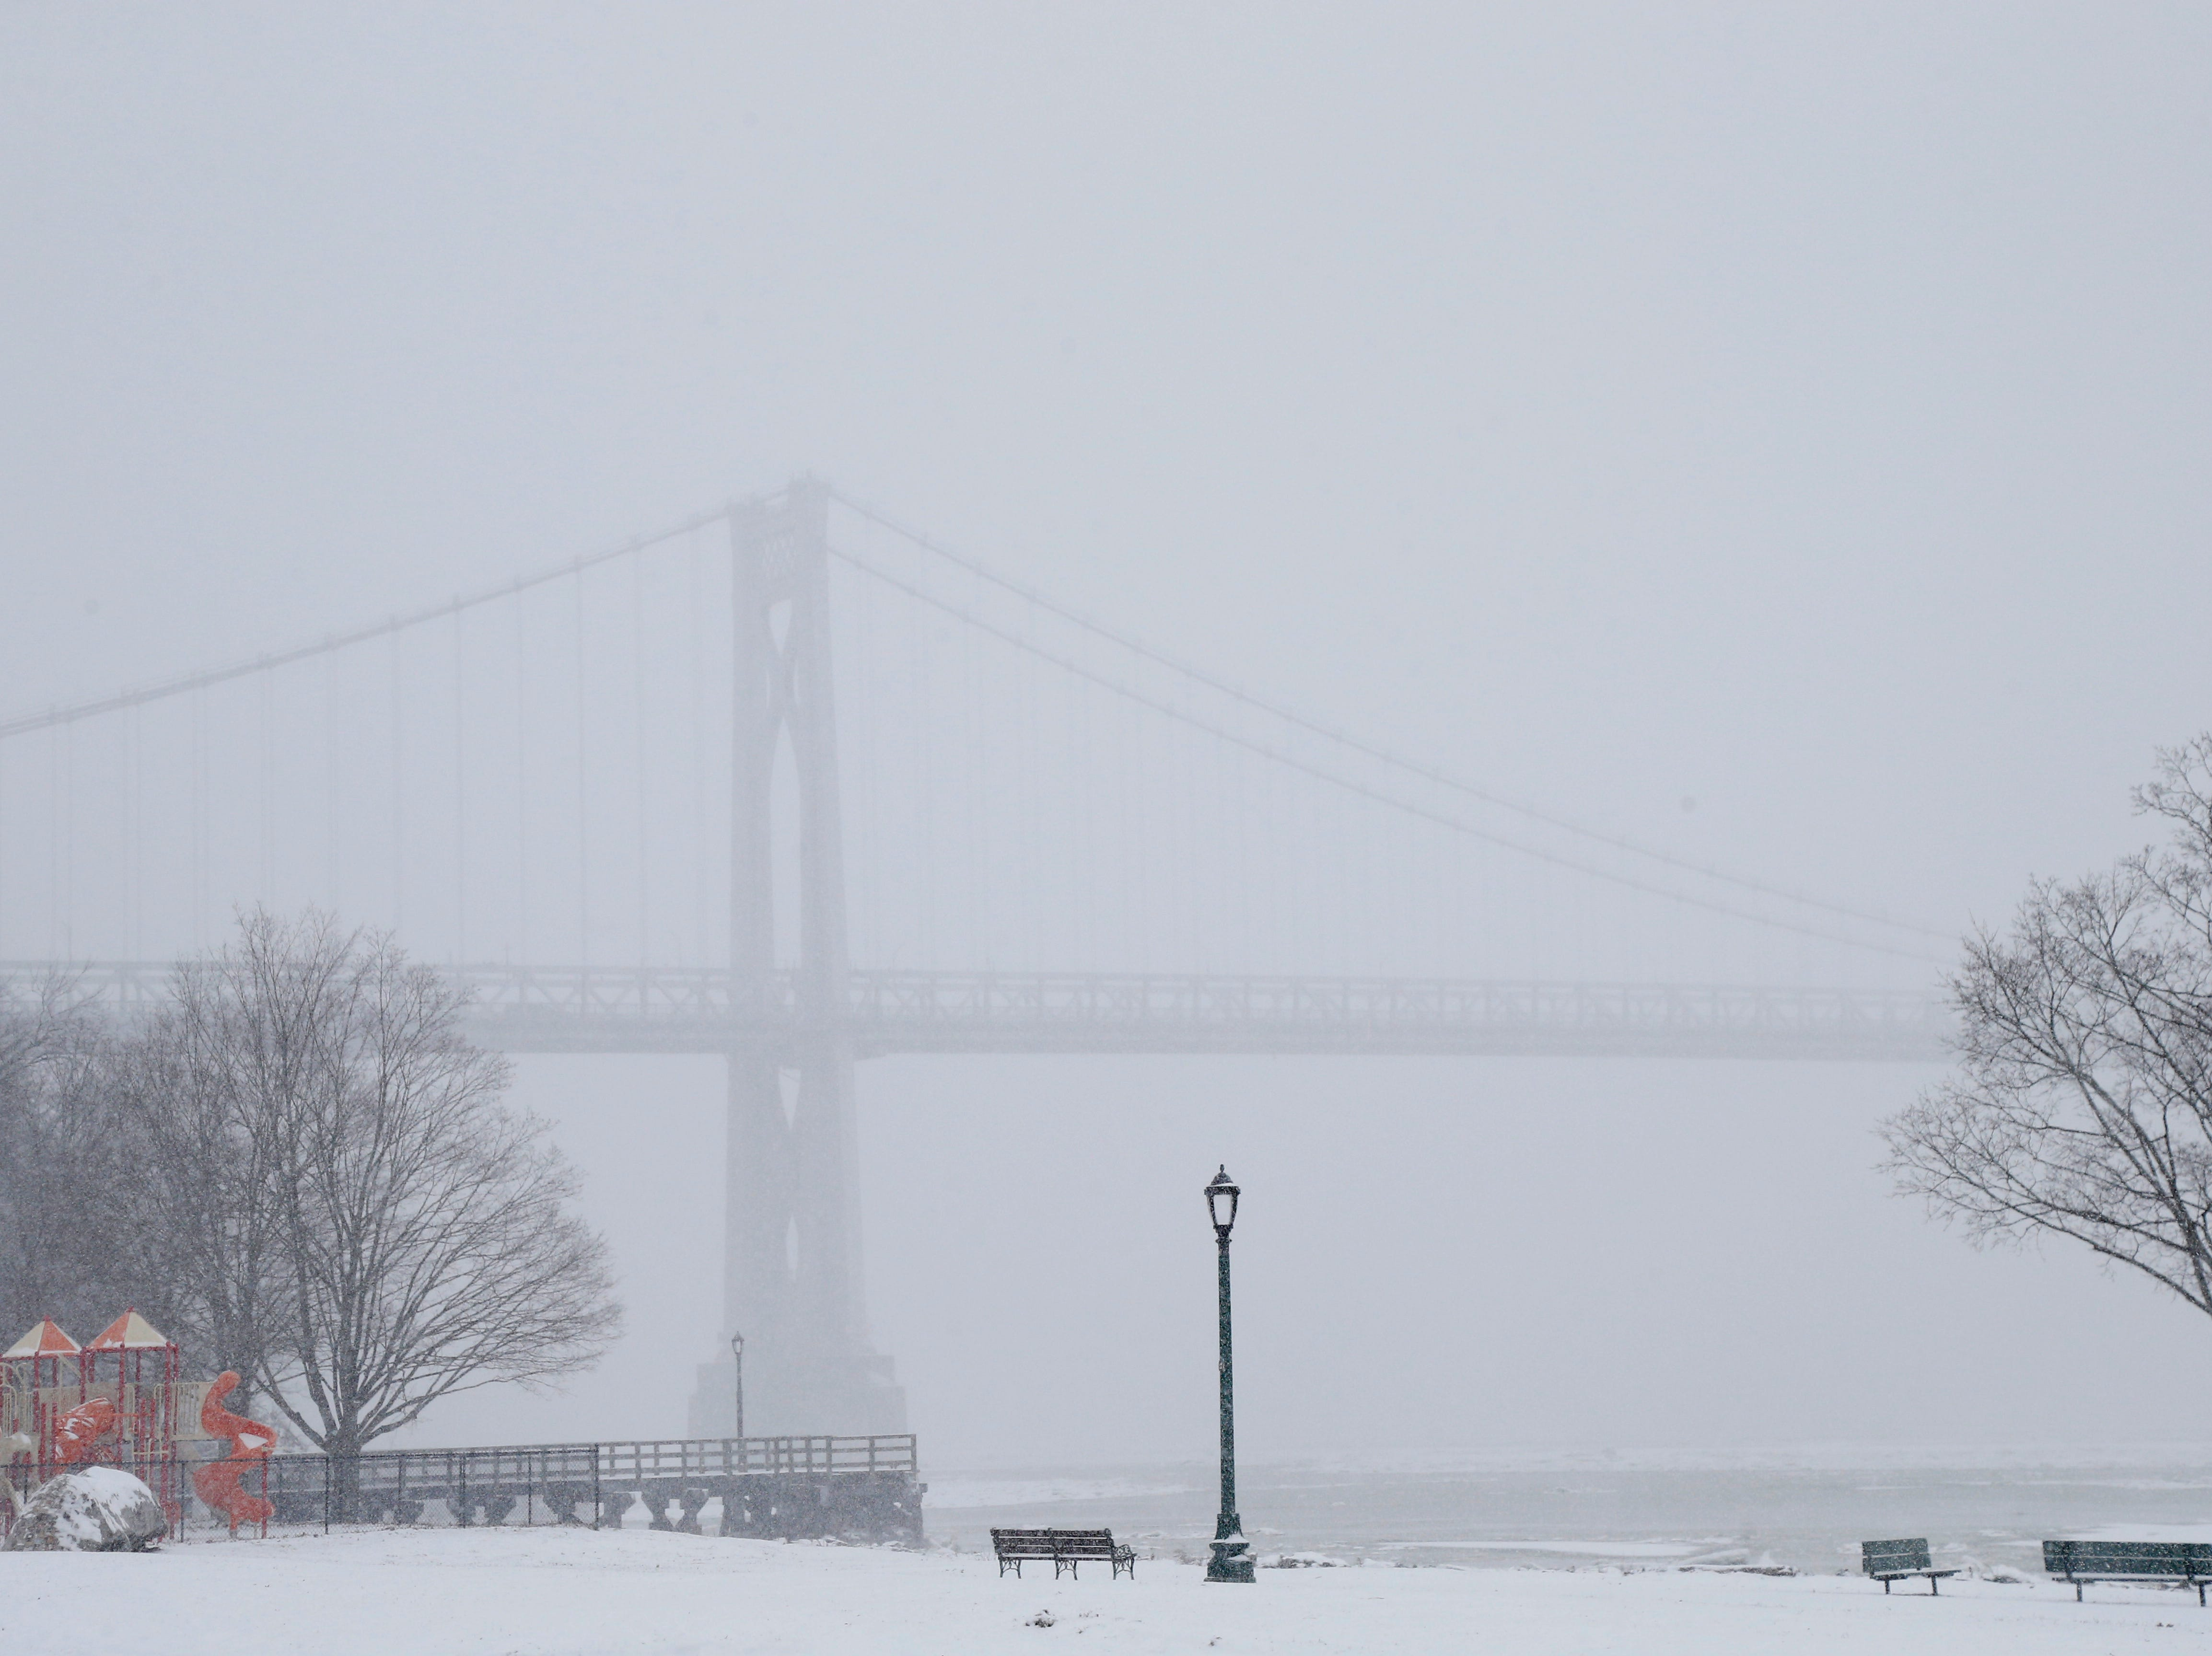 Snow obscures the view of the Mid-Hudson Bridge from Waryas park in the City of Poughkeepsie on February 12, 2019.